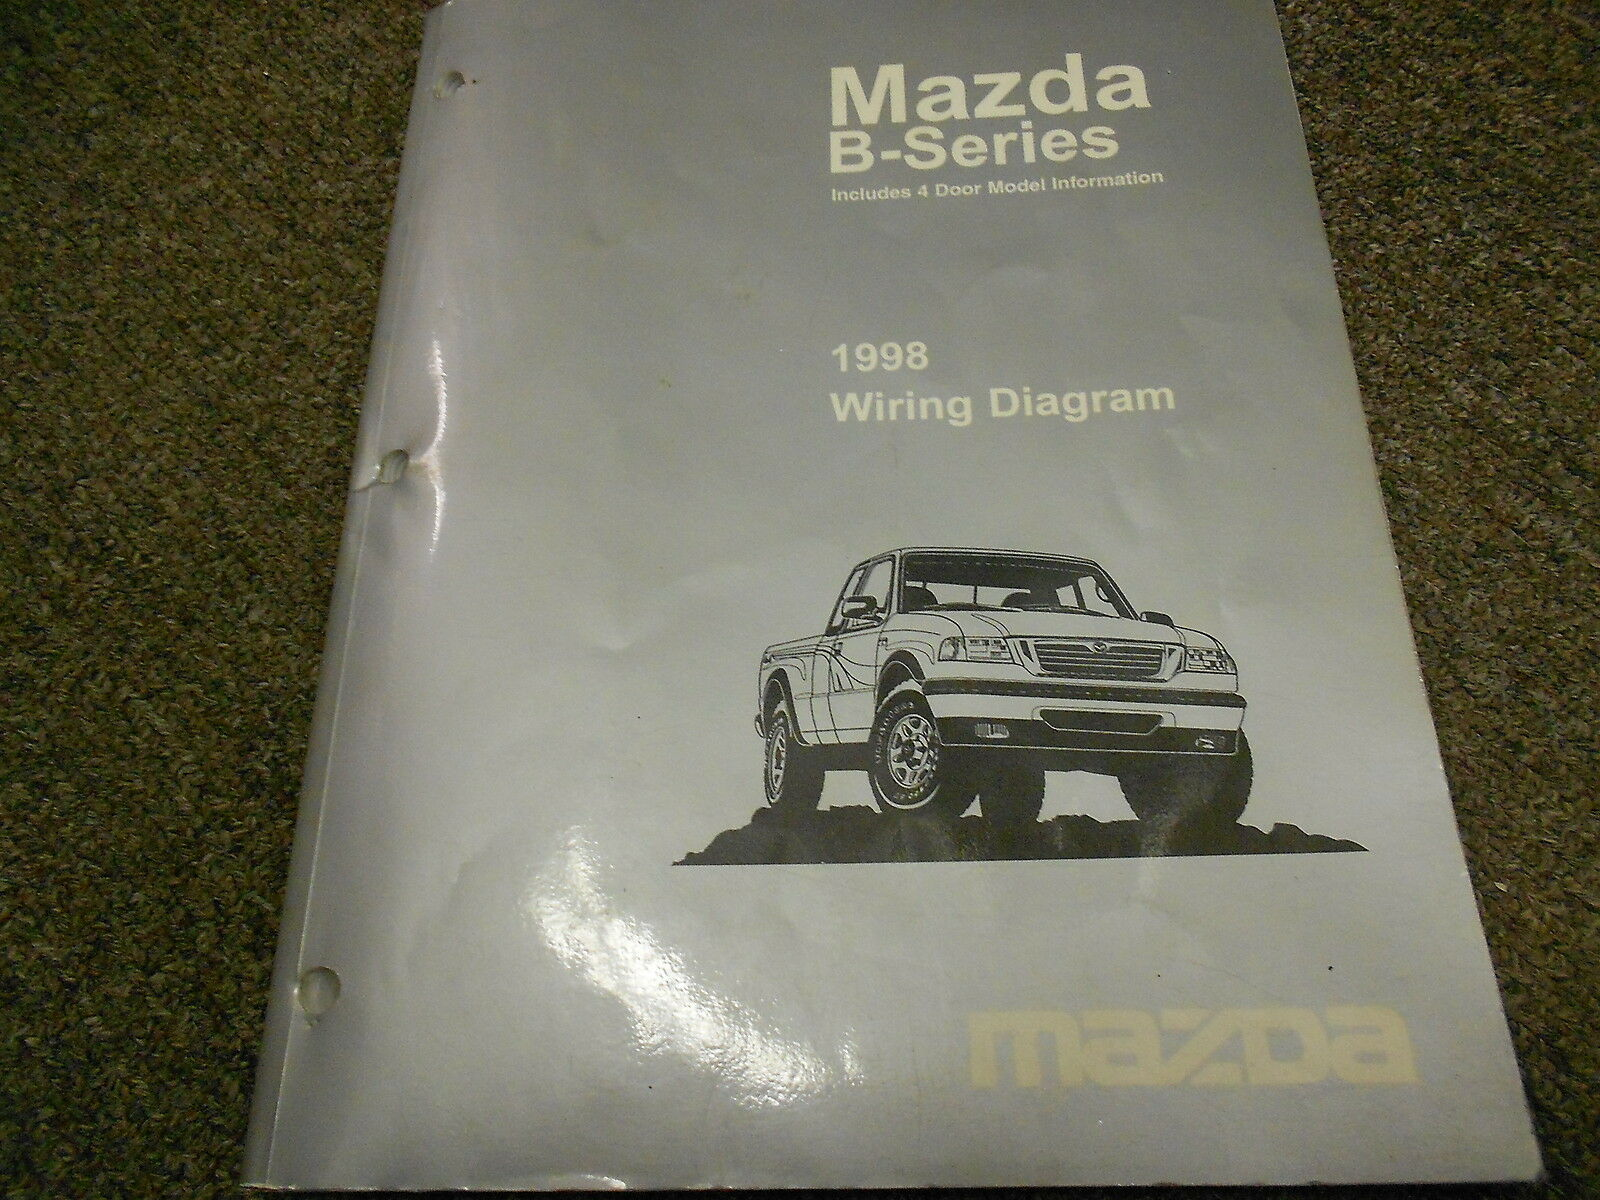 100 Mazda Tribute Service Repair Manual Mazd100 B4000 Truck 1998 B3000 Wiring Diagram Owners Problems With The